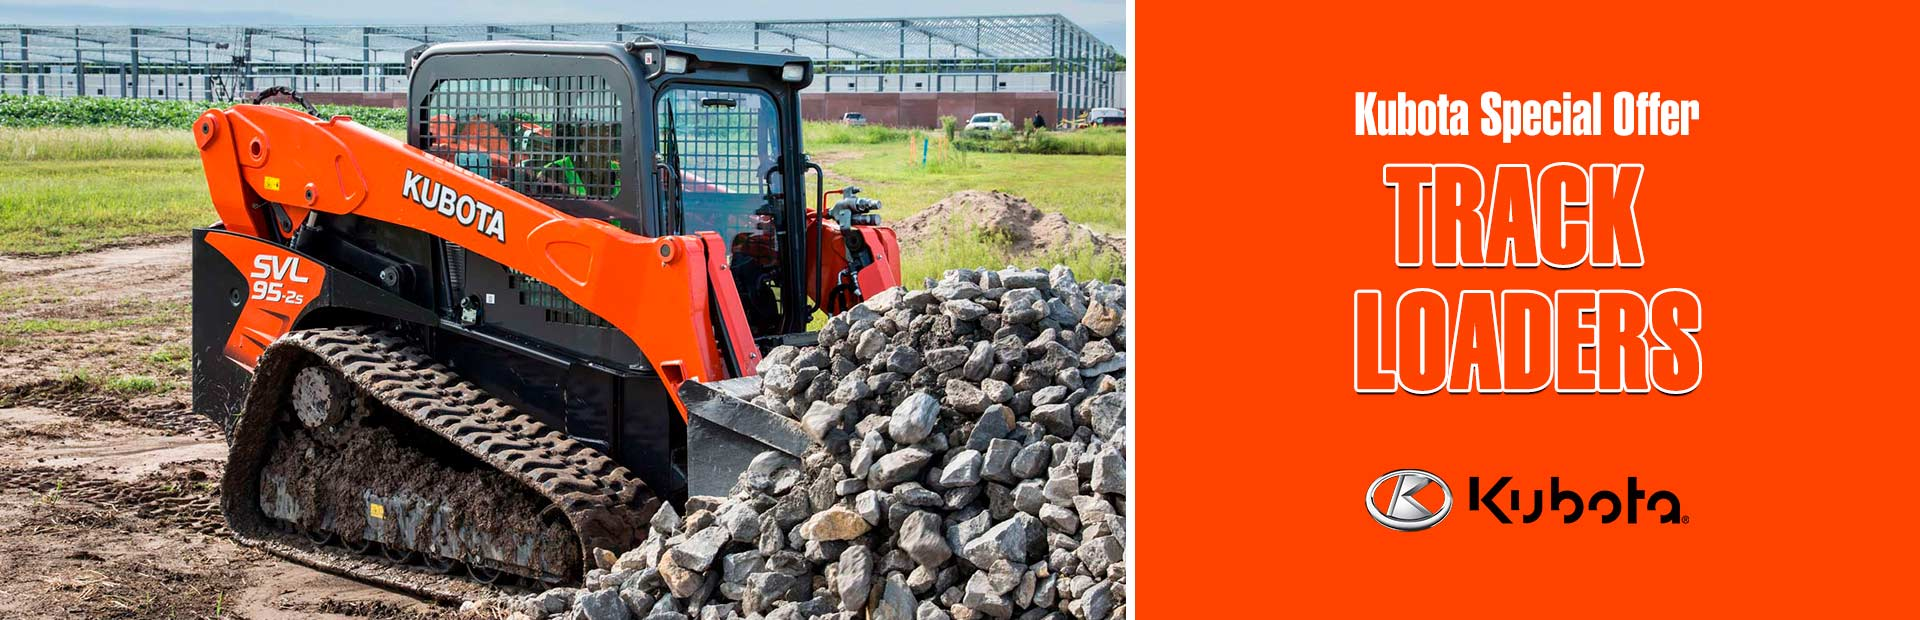 Kubota: Kubota Special Offer - Track Loaders